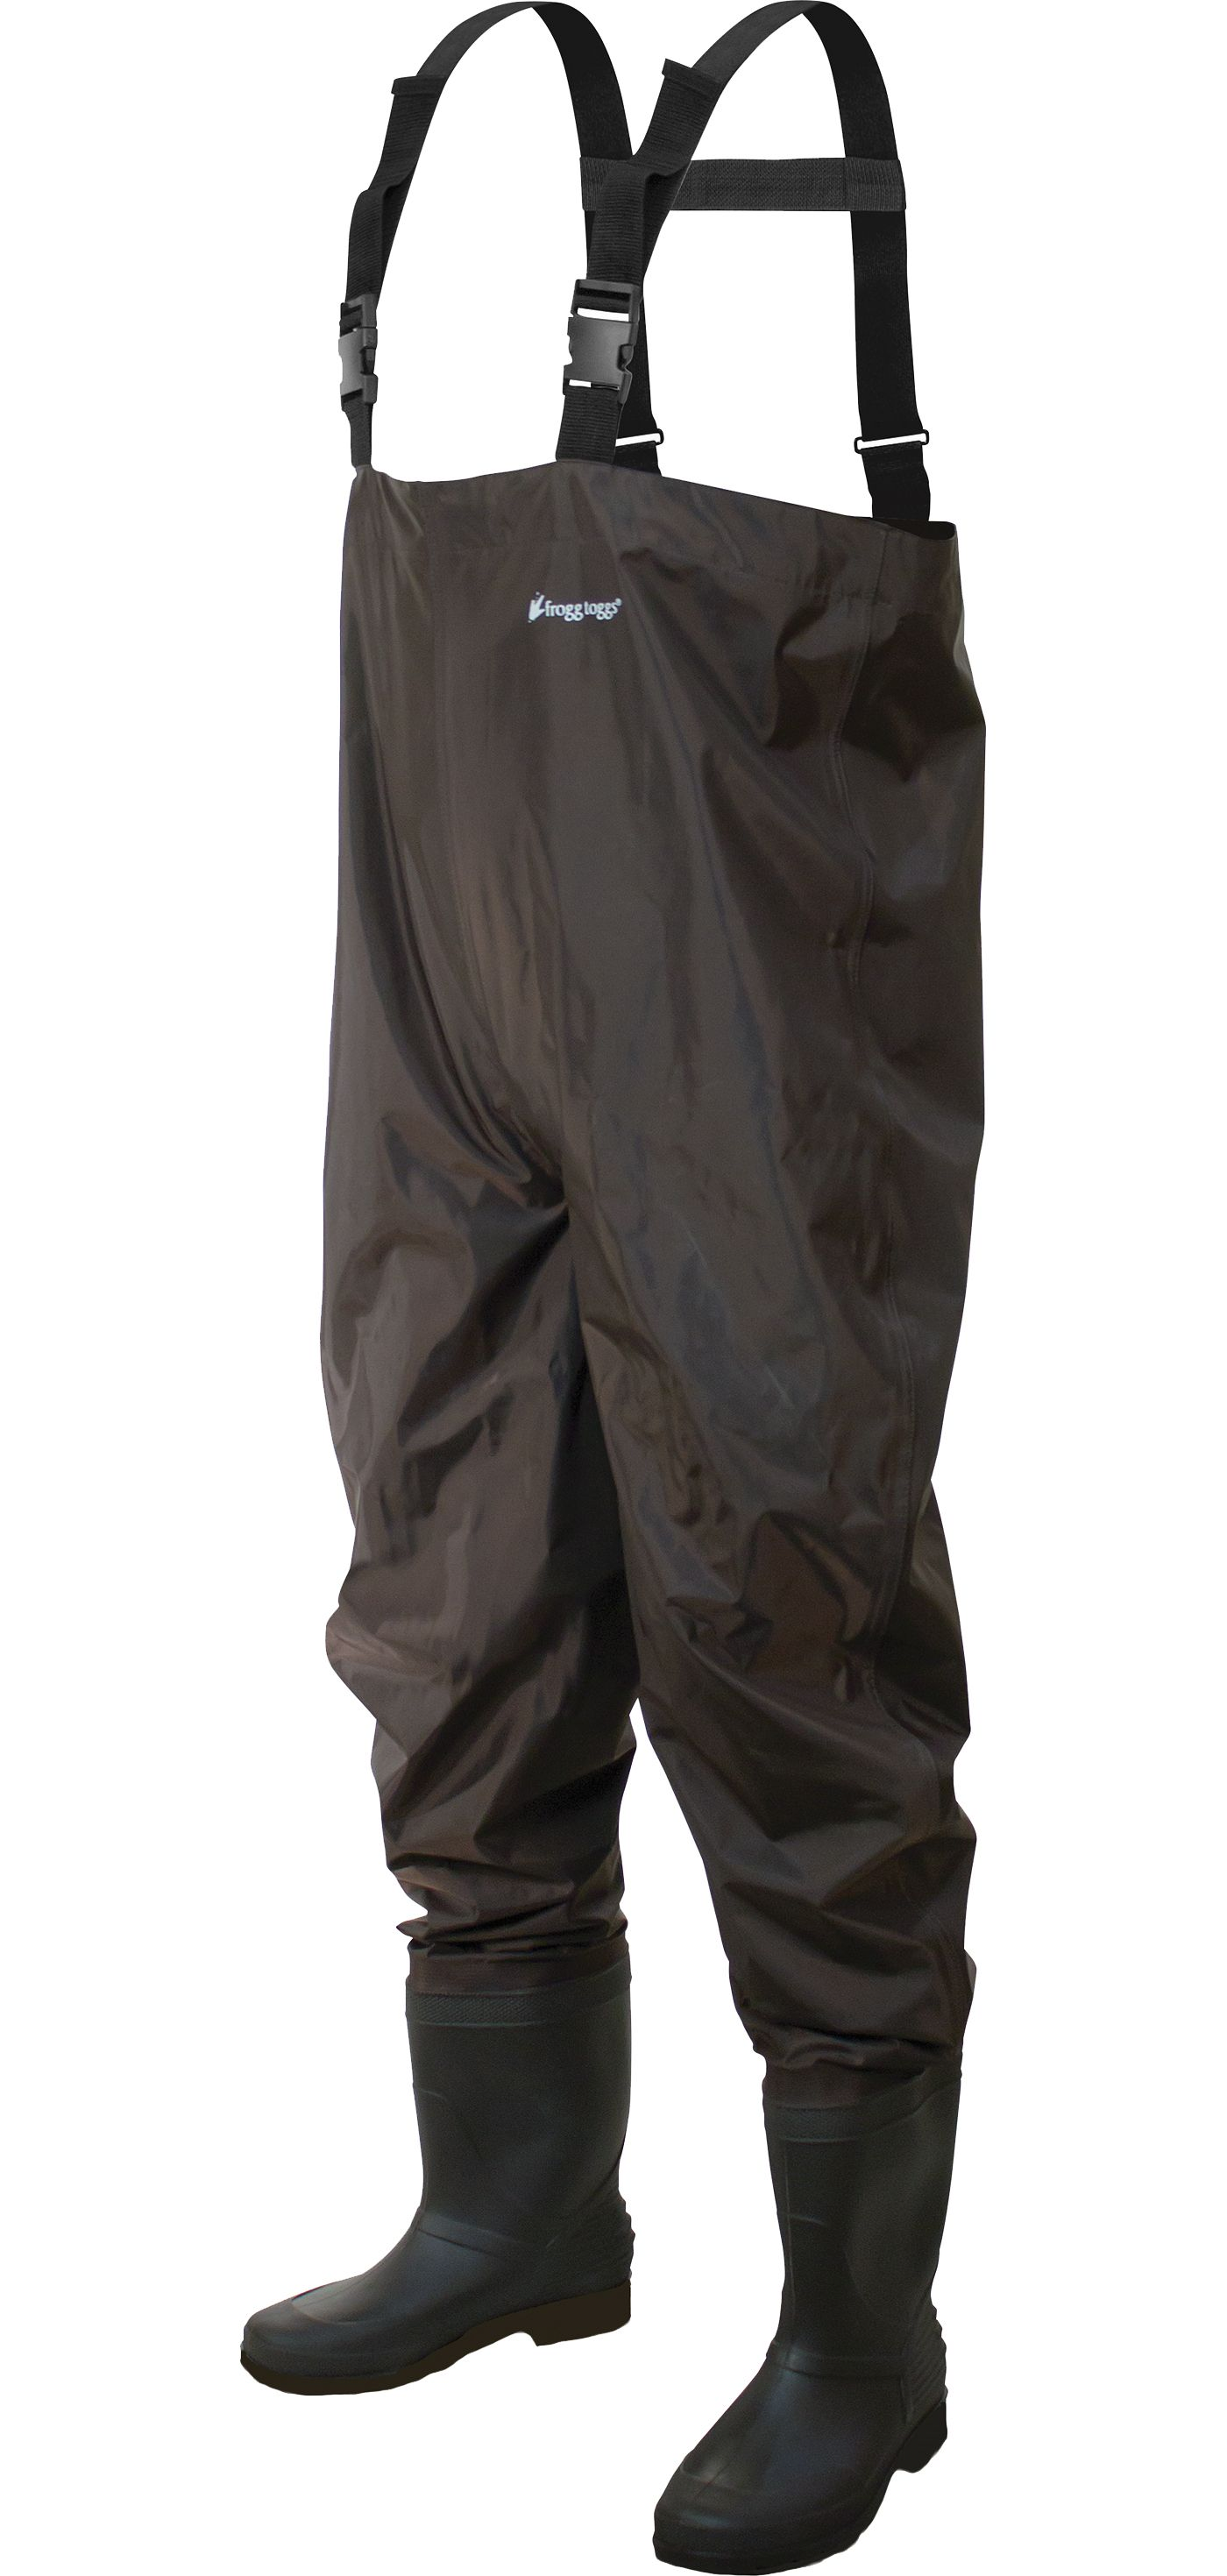 frogg toggs Rana II PVC Chest Waders